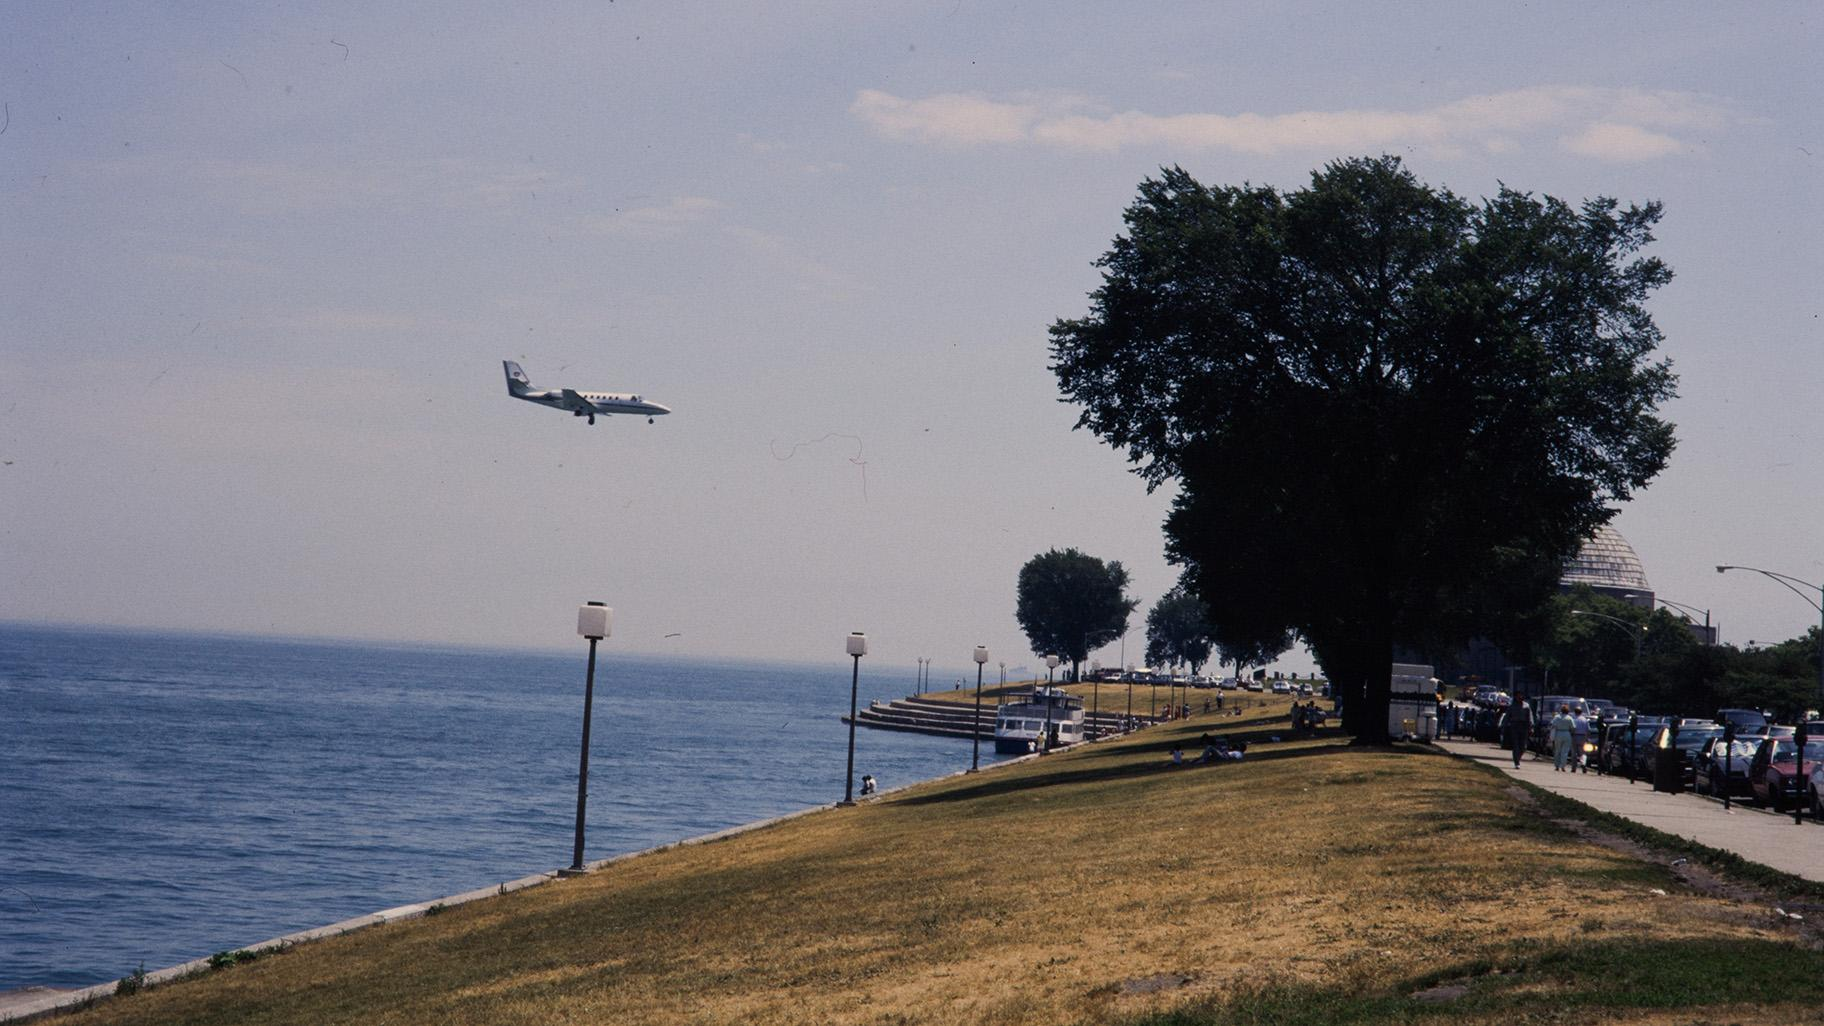 A plane lands at Meigs Field (Courtesy of Chicago History Museum)